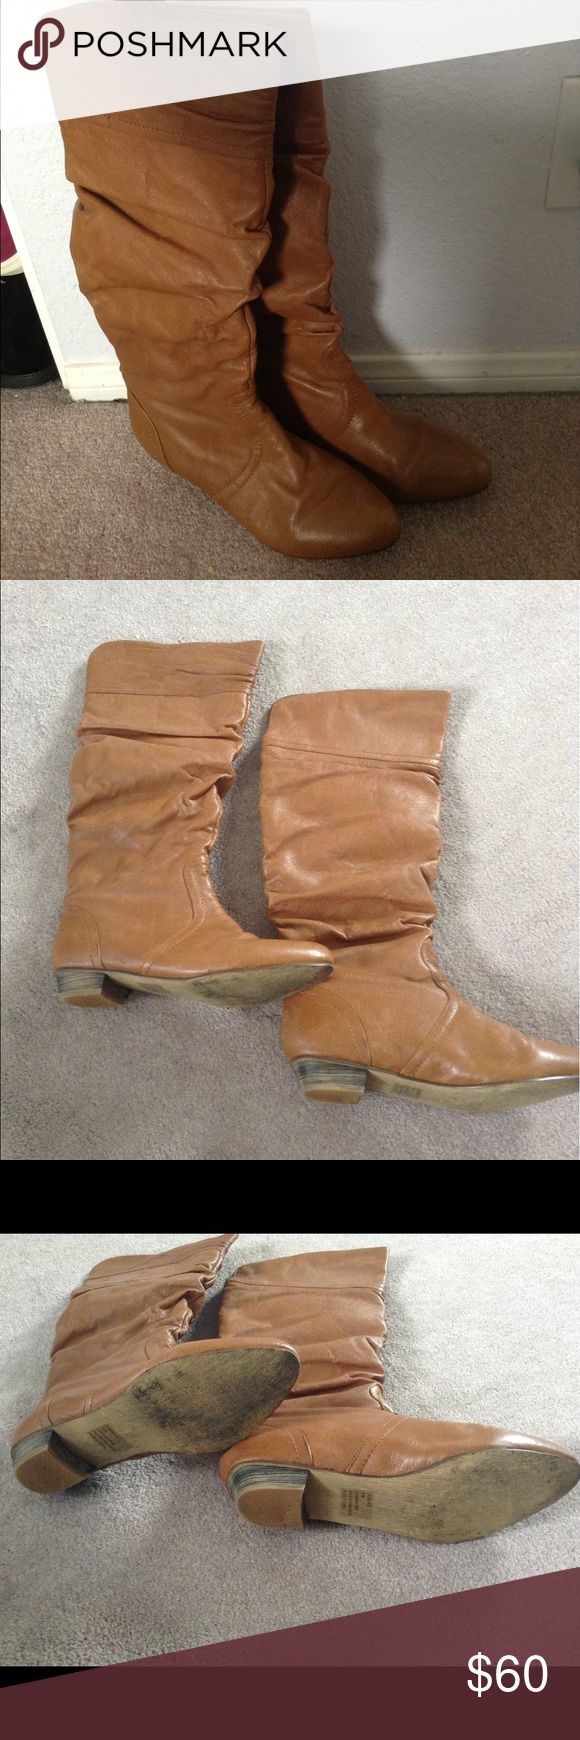 9.5 candence Steve Madden cognac boots worn once Will only be listed until June 11th Steve Madden Shoes Ankle Boots & Booties